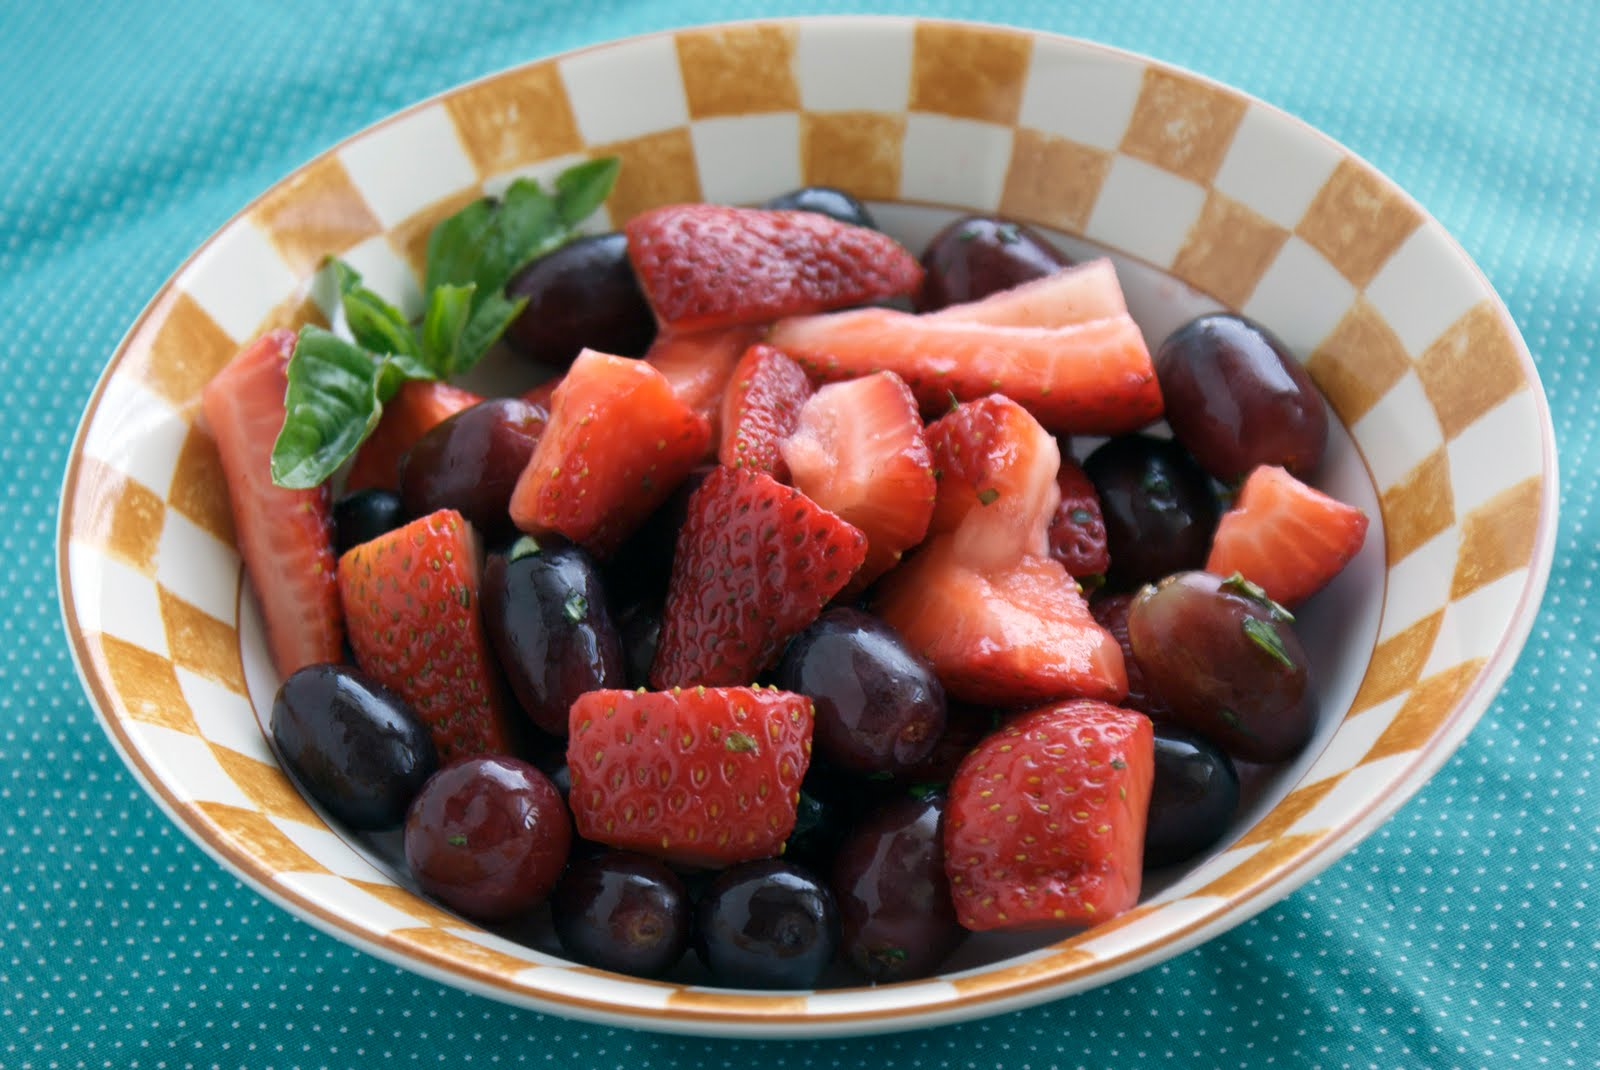 Herbed Fruit Salad